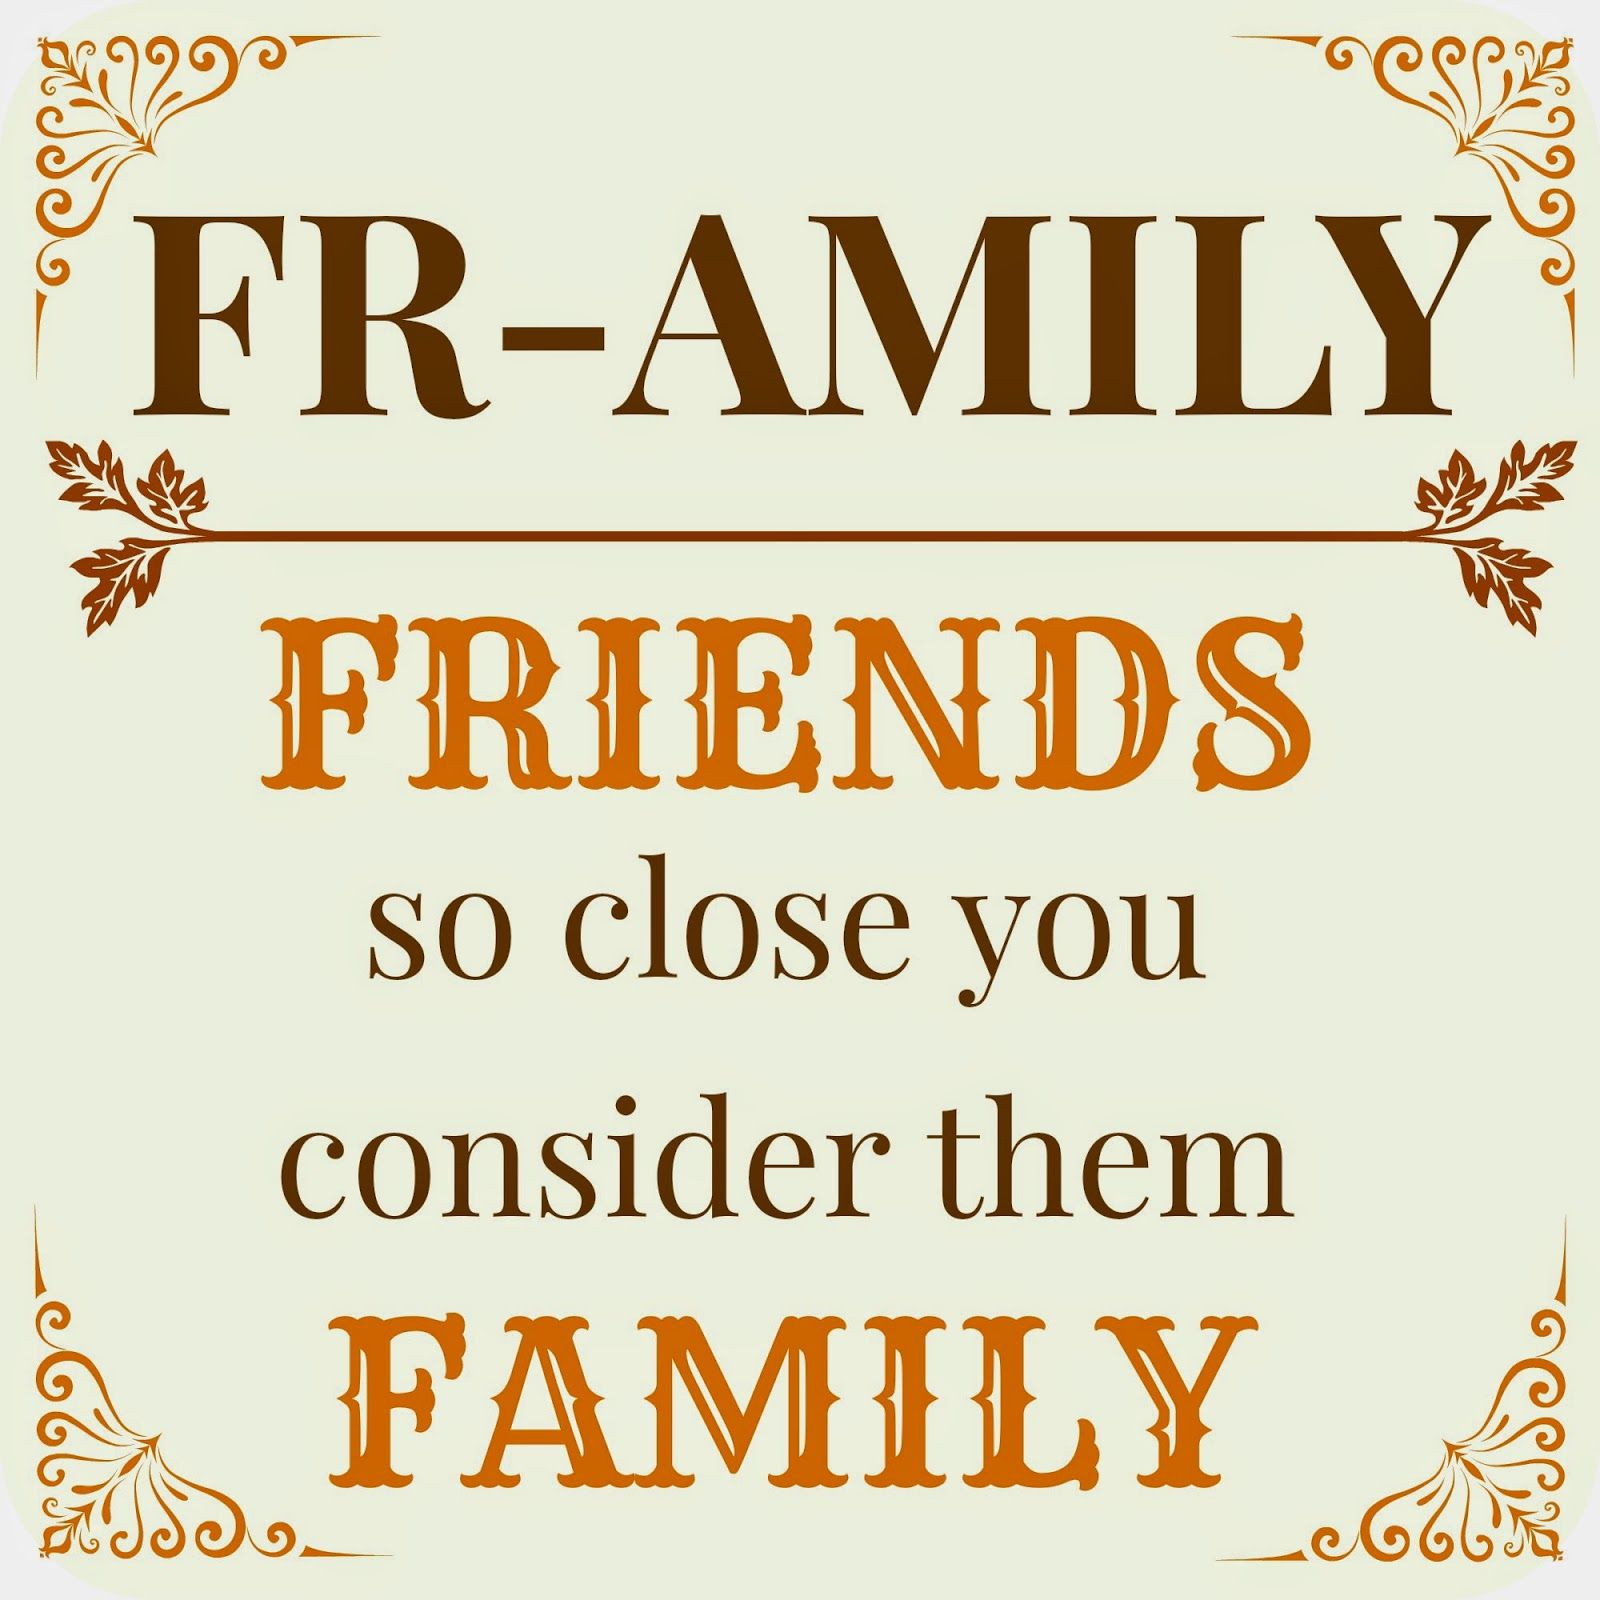 Friends Being Family Quotes  Friends Like Family Quotes Quotes About Friends Being